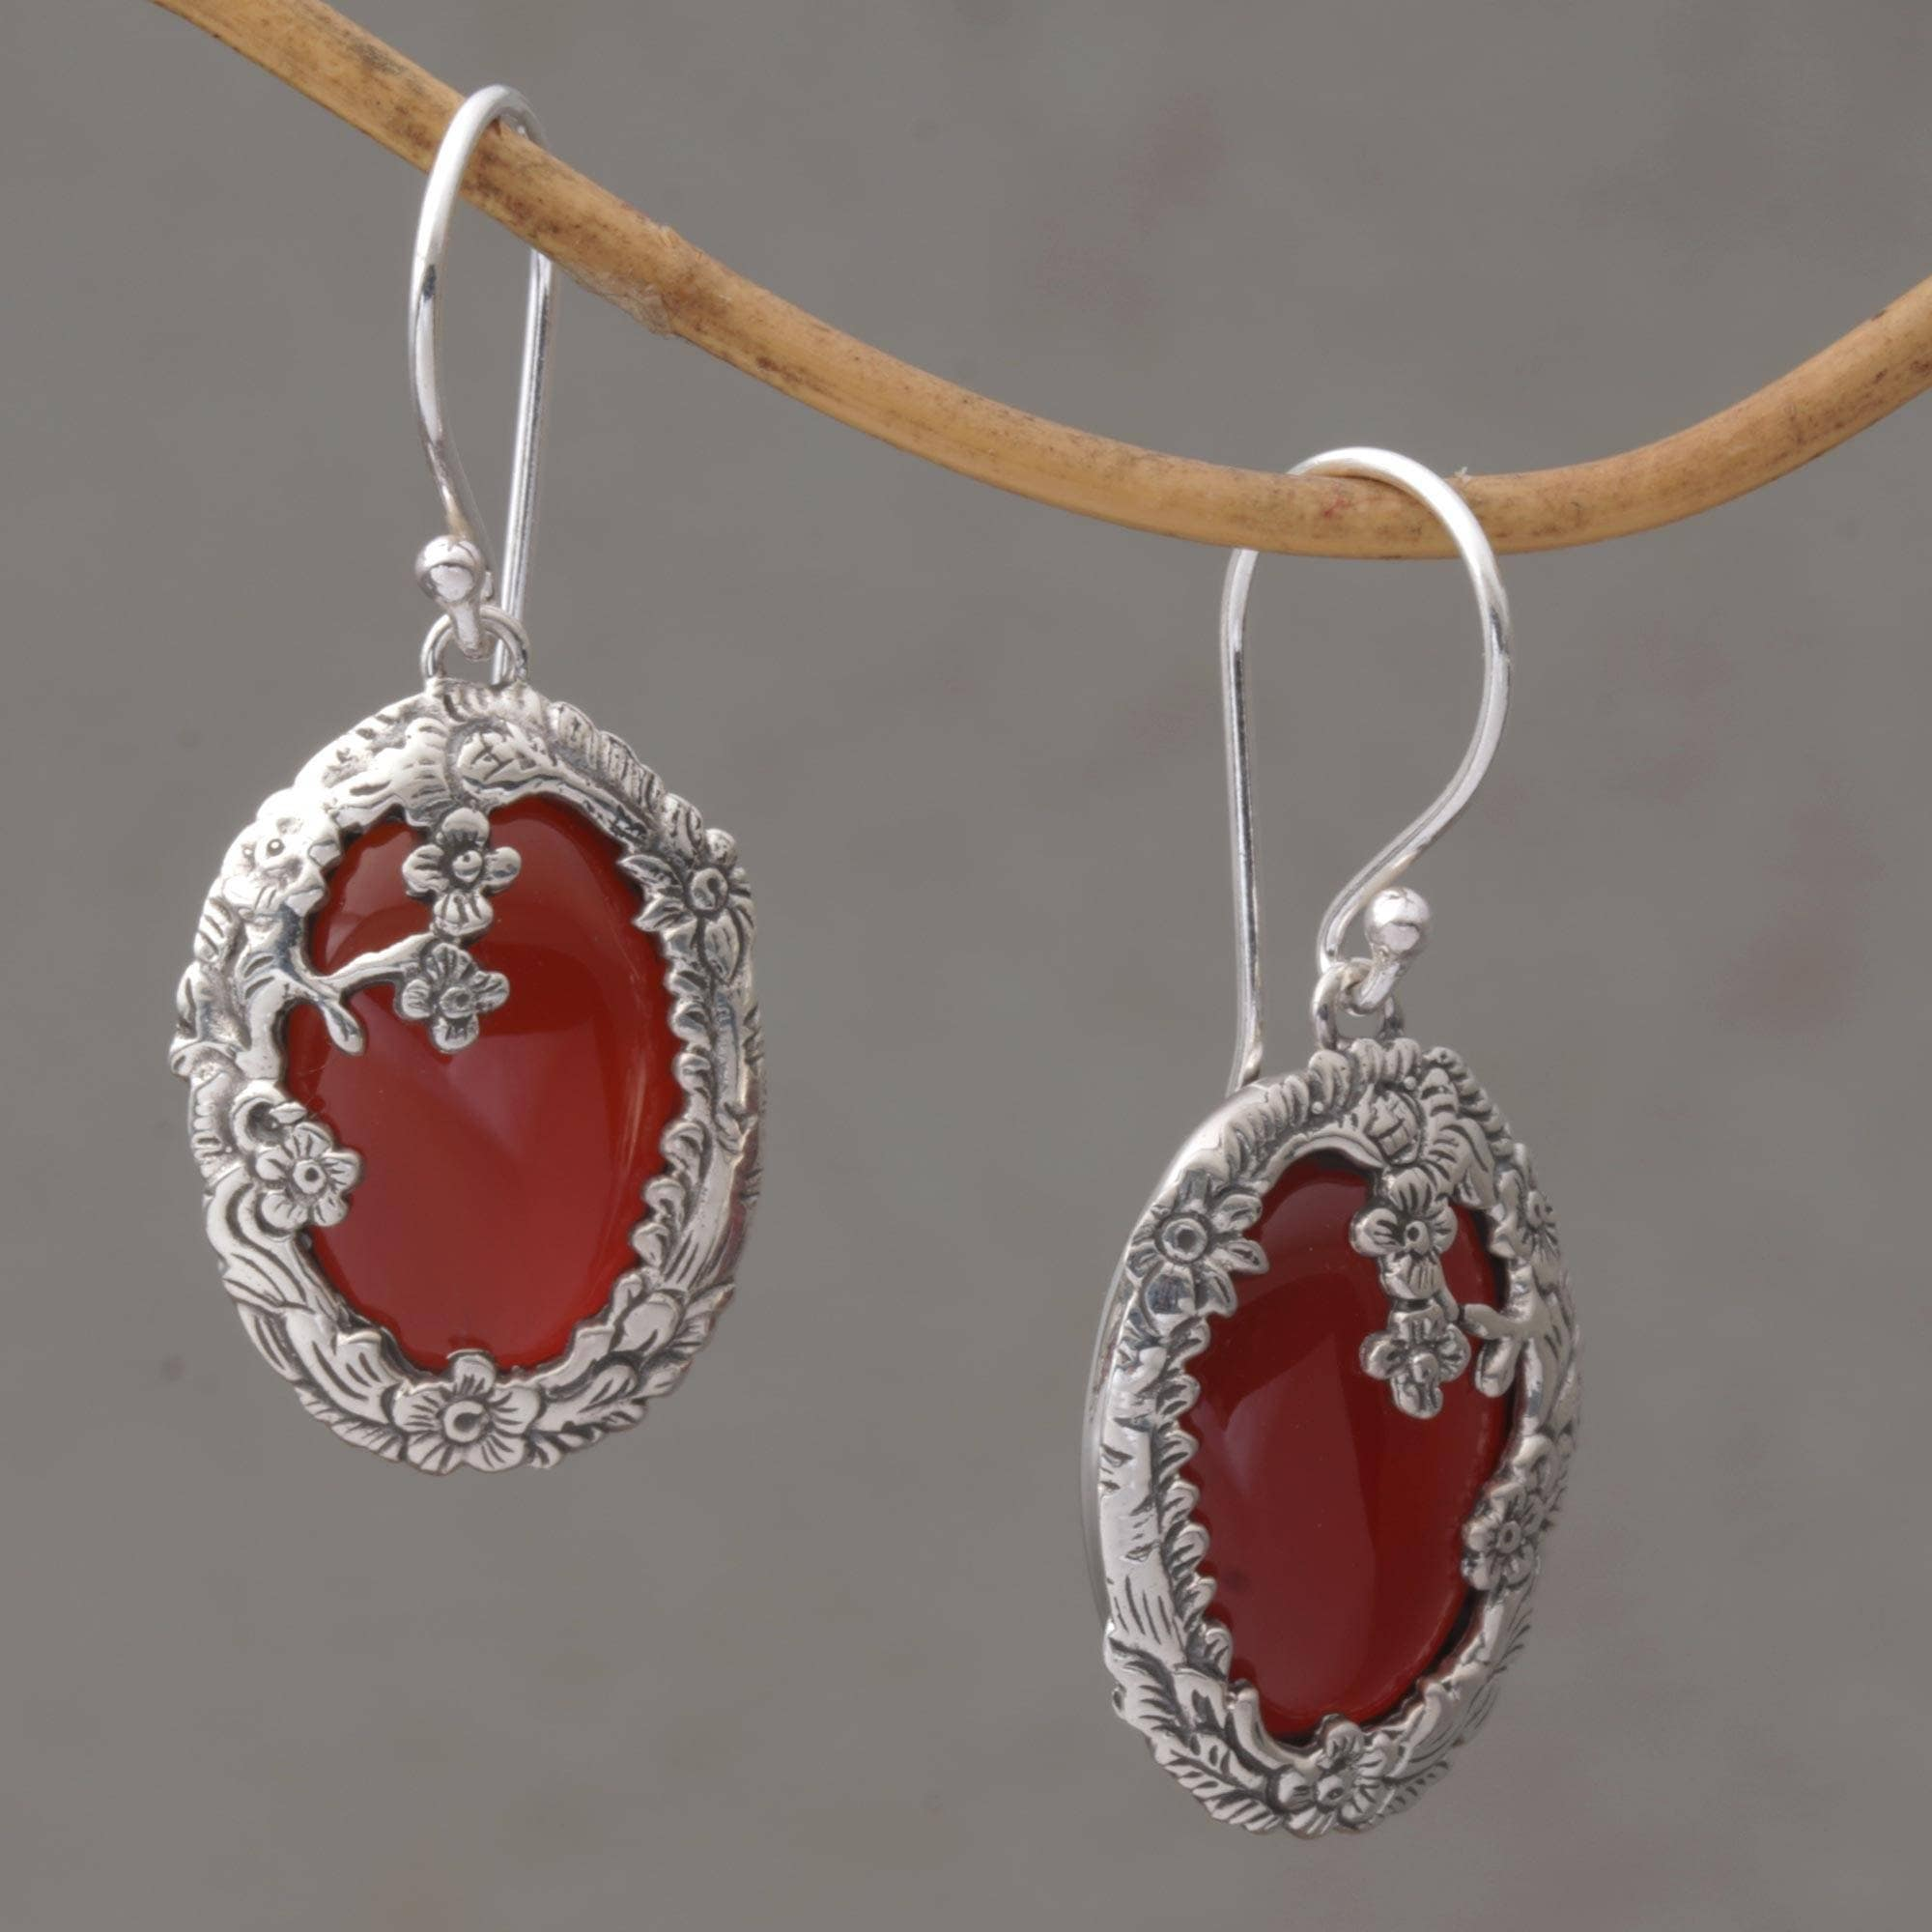 the shop carnelian briolette arya product esha scale red garnets crop upscale with false subsampling earrings